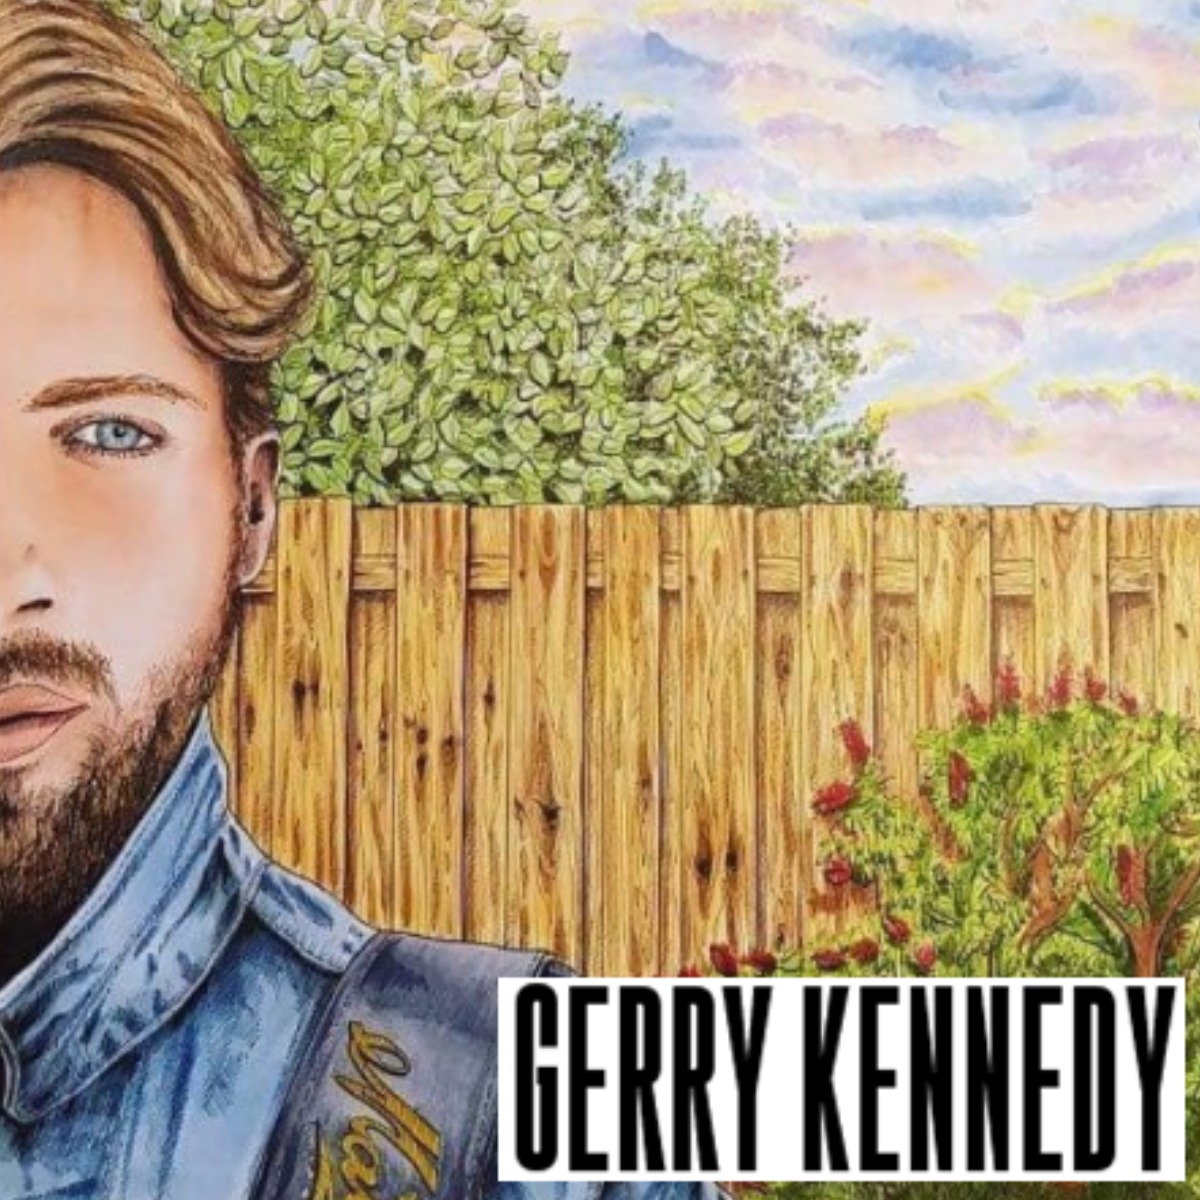 GERRY KENNEDY